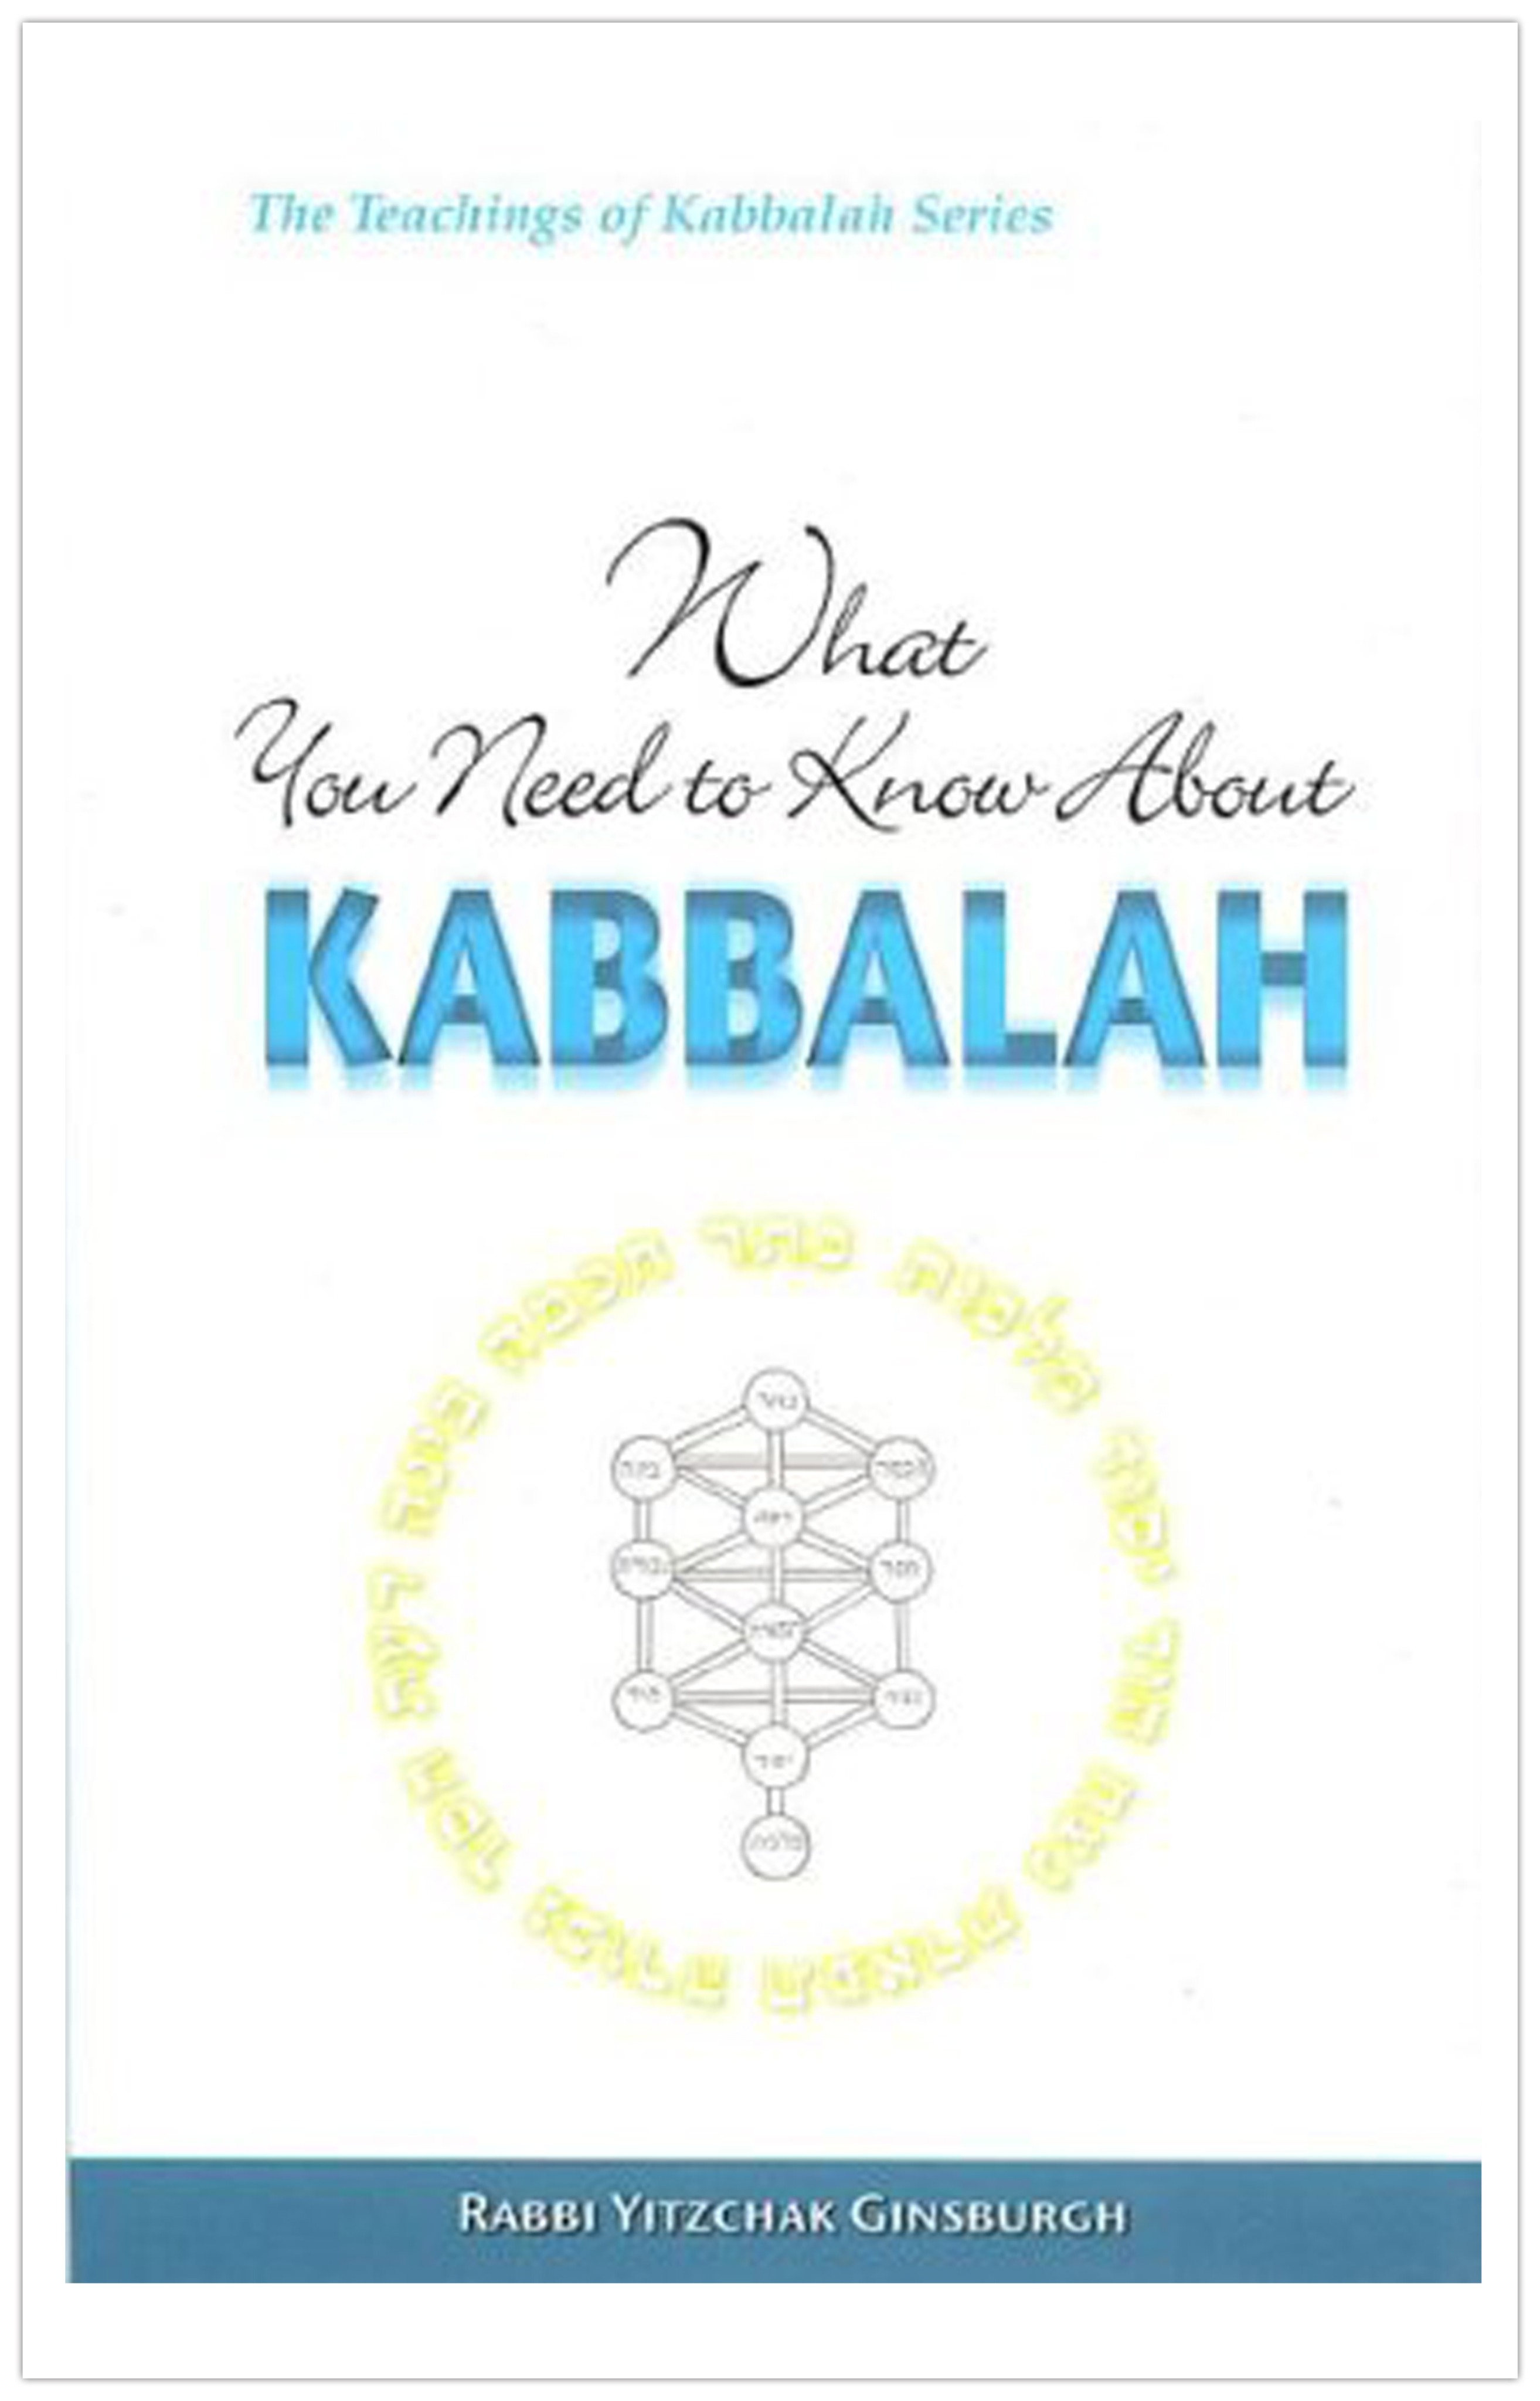 What You Need To Know About Kaballah